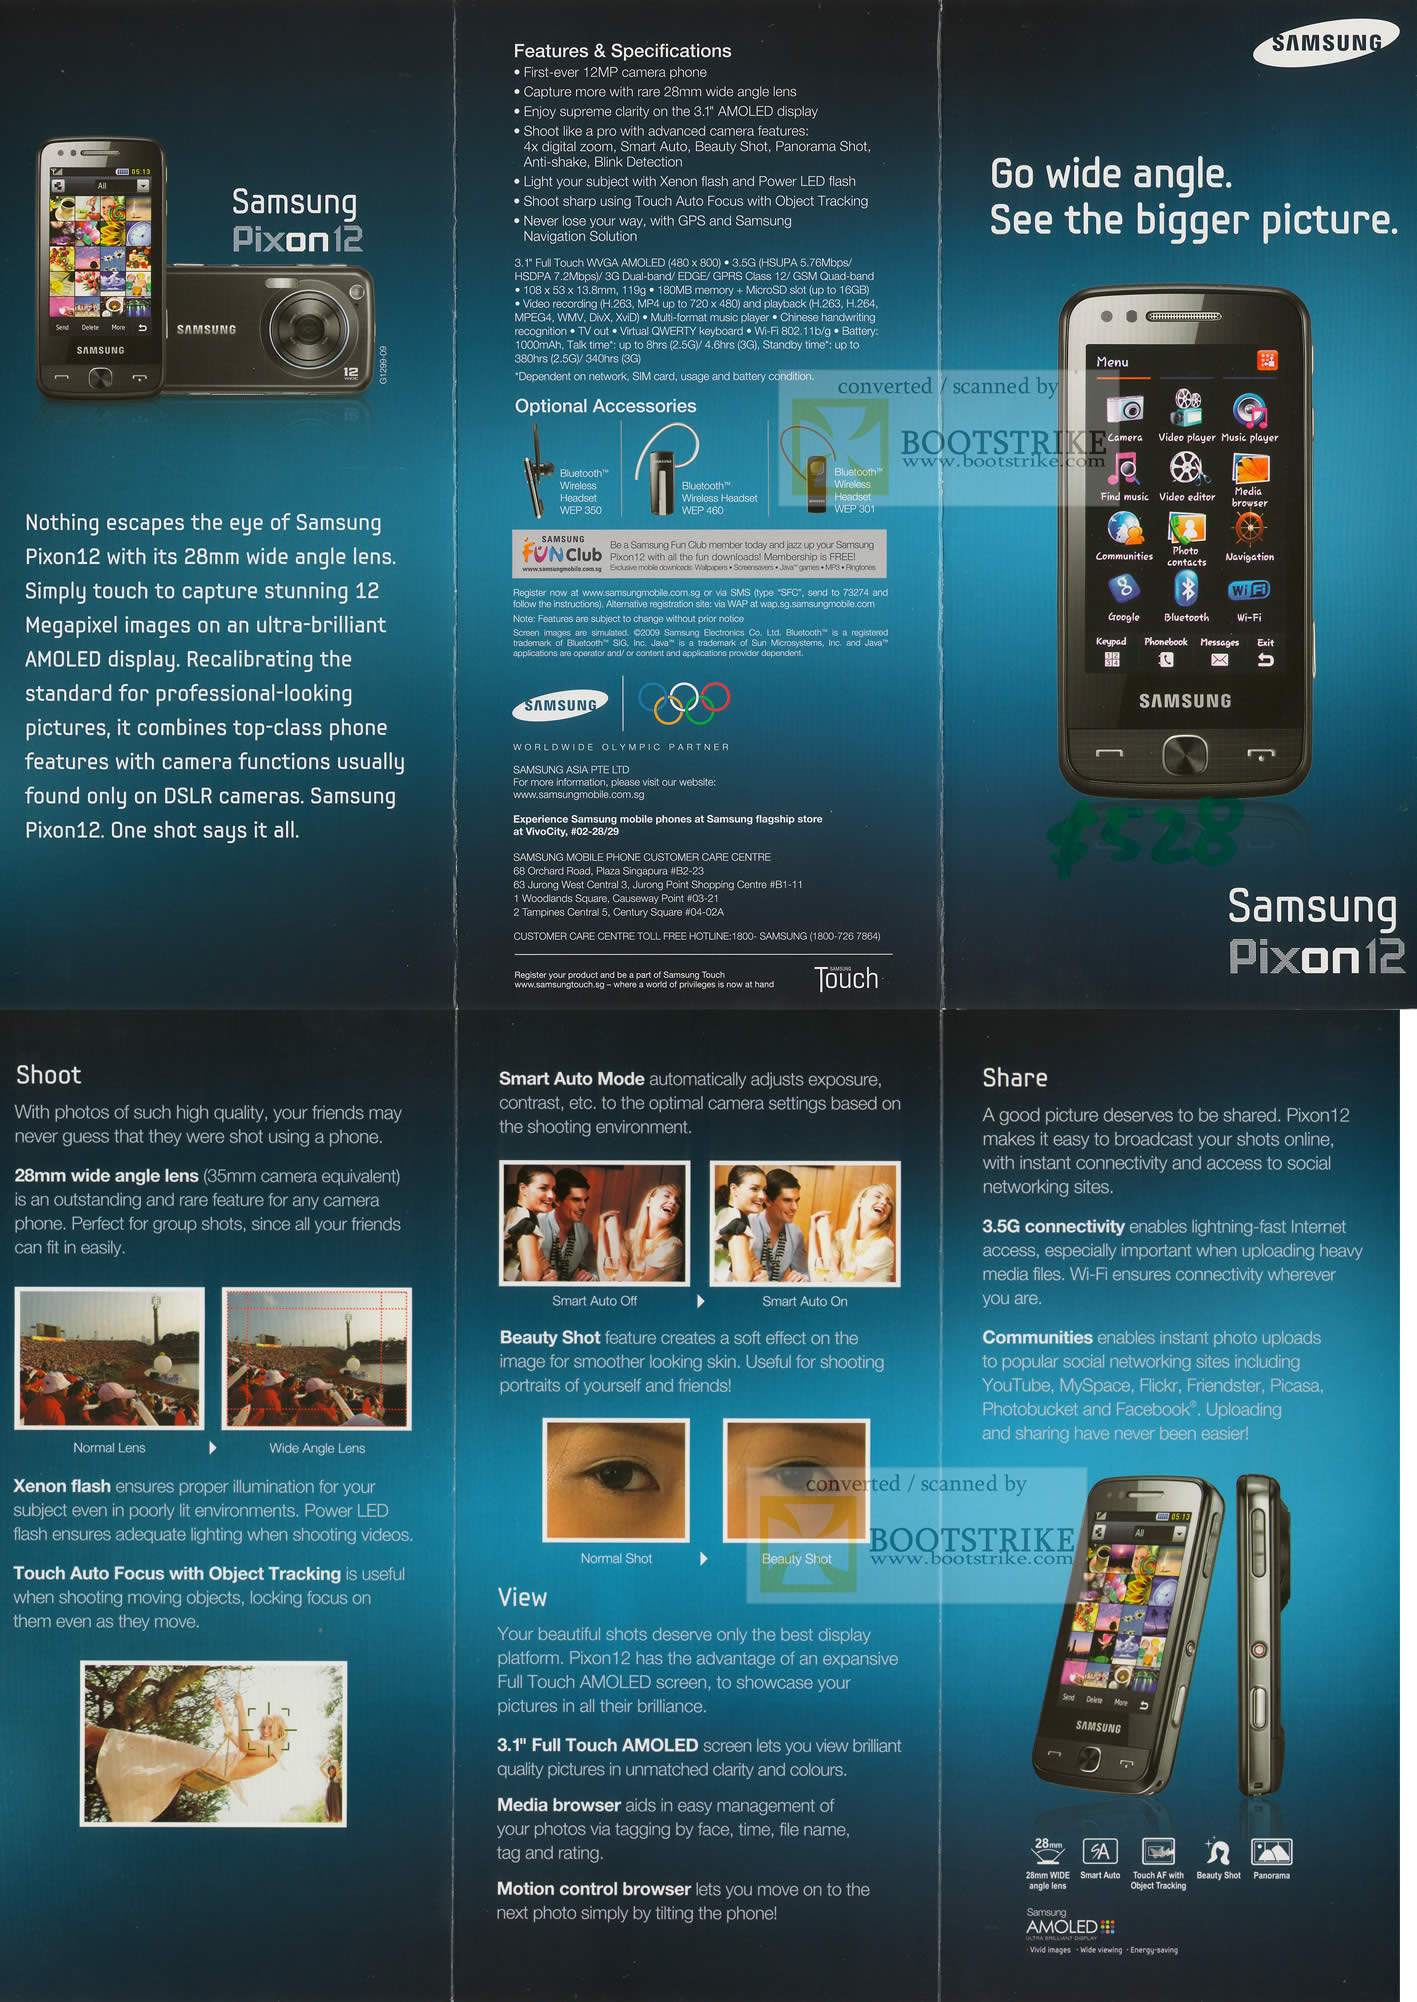 Credit Cards For Fair Credit >> Samsung Pixon12 Mobile Phone OLED SITEX 2009 Price List Brochure Flyer Image